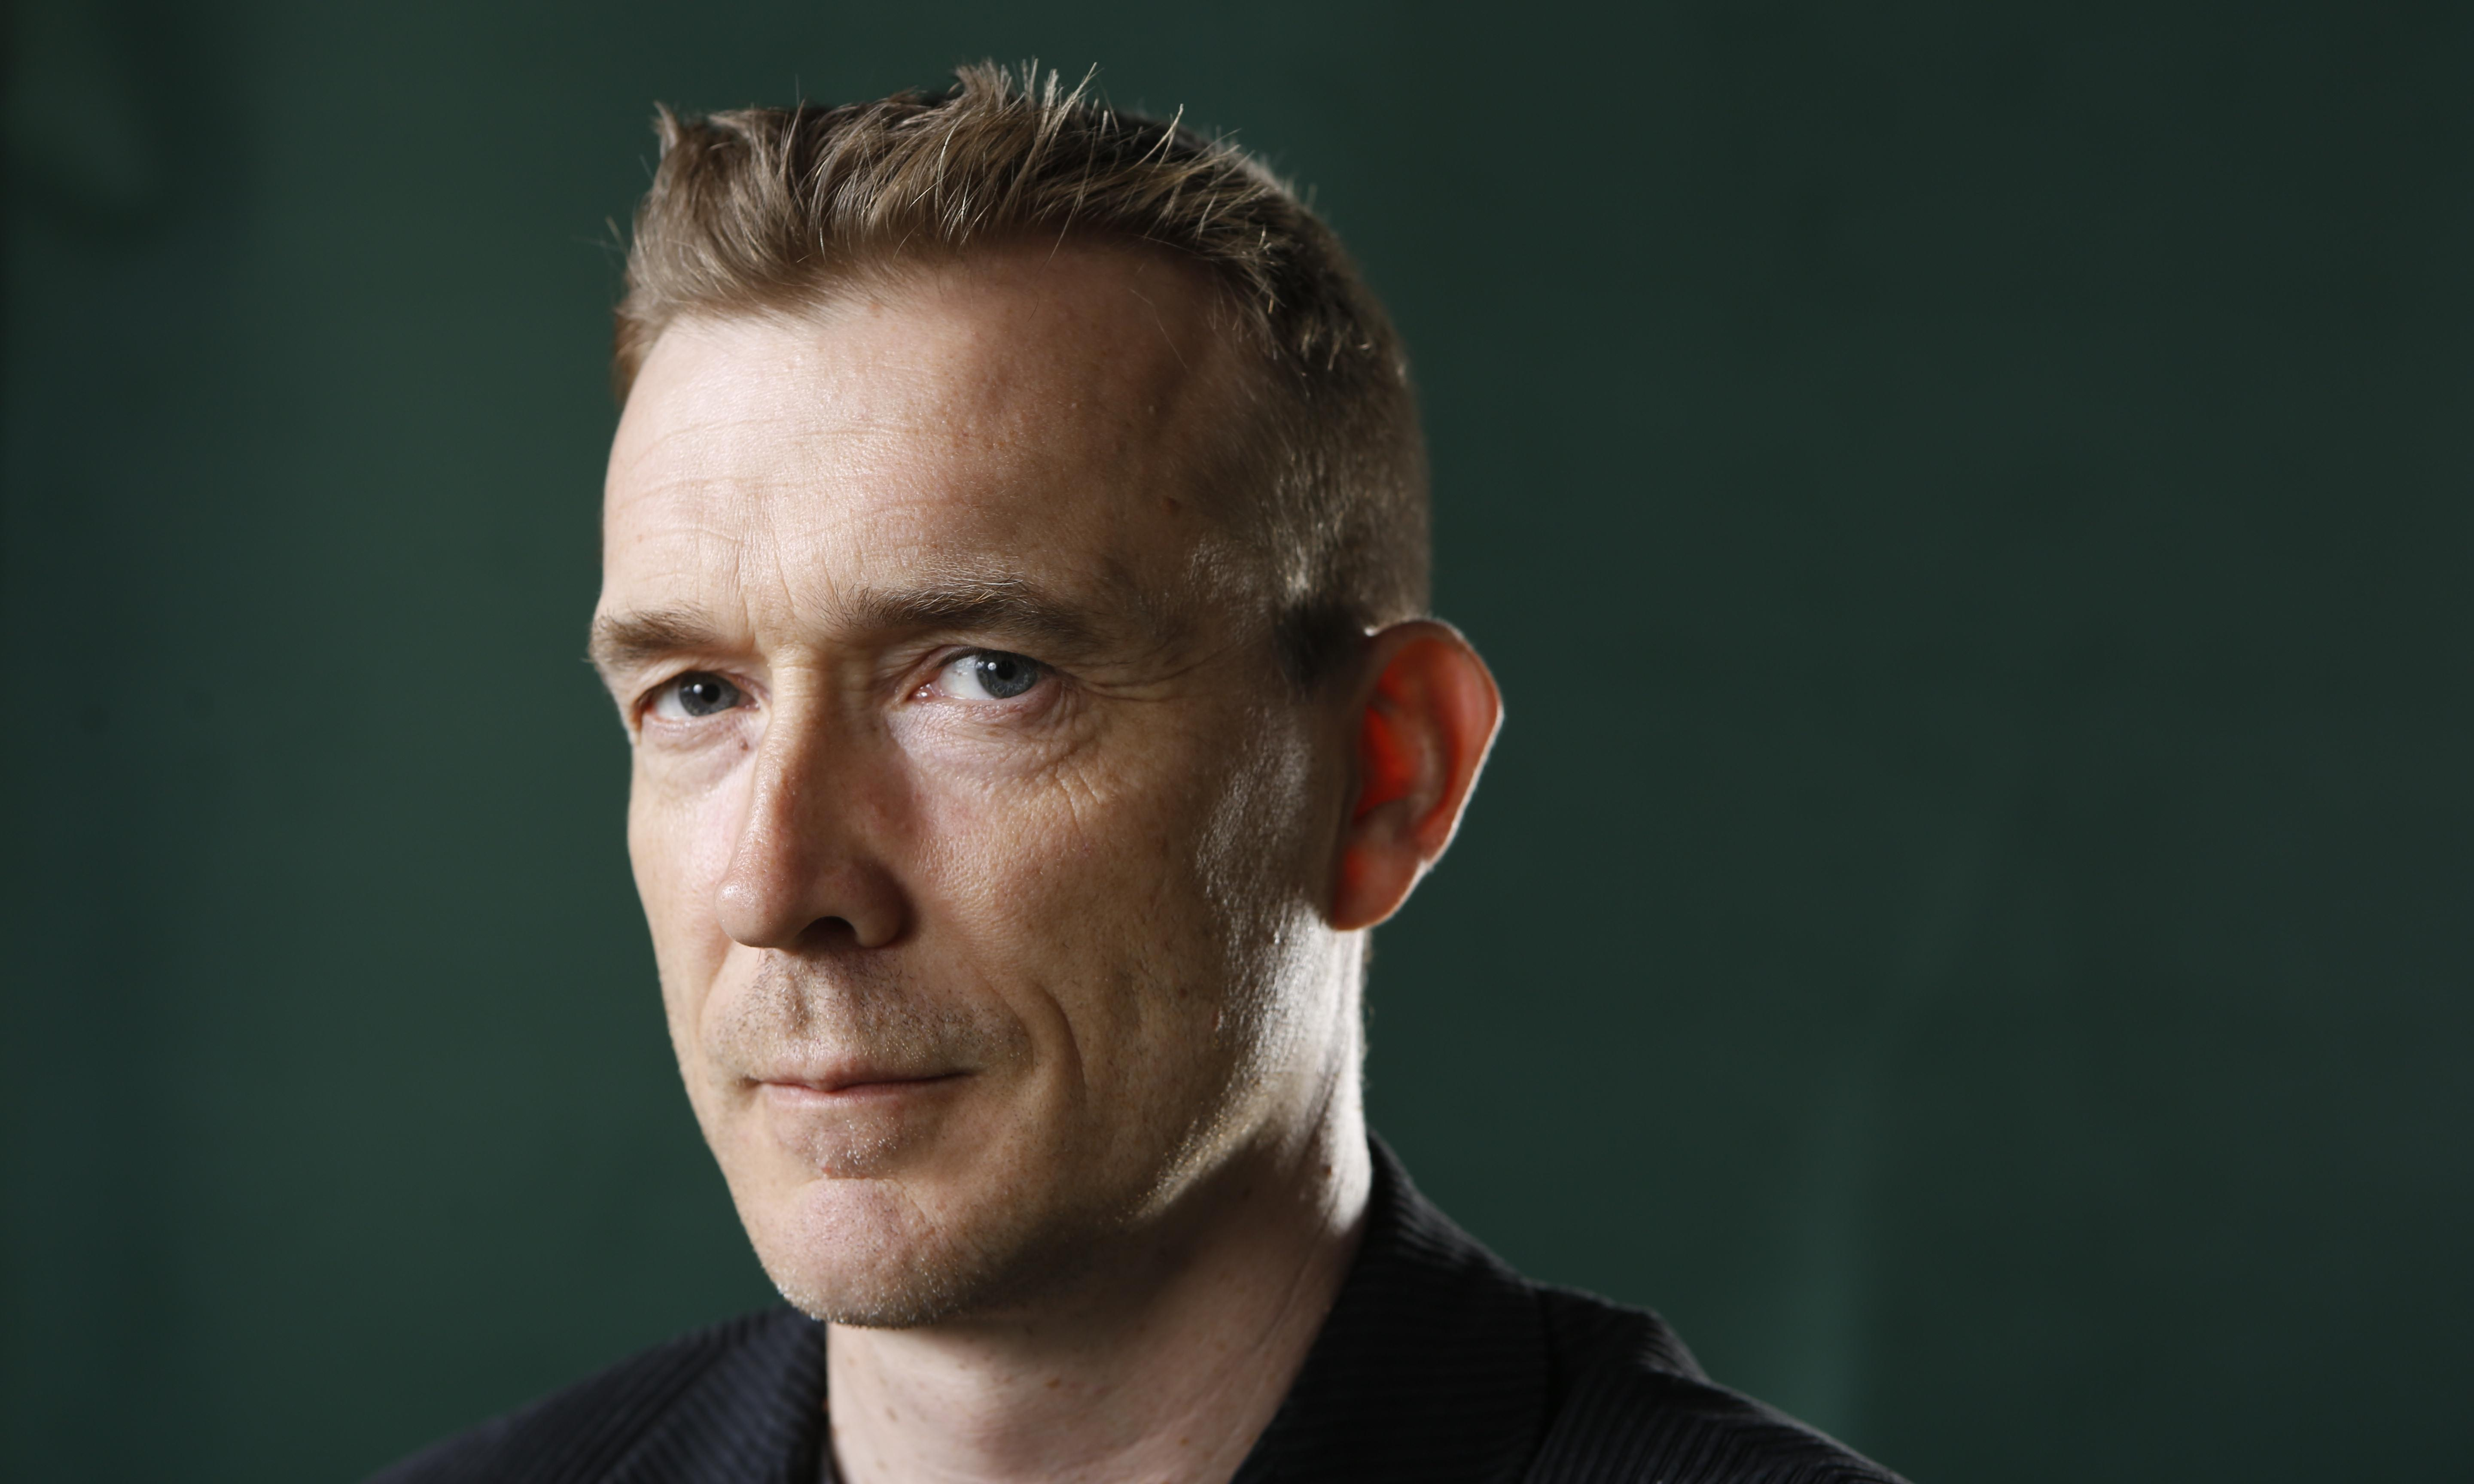 'What'll happen if I try this?': David Mitchell on writing Cloud Atlas